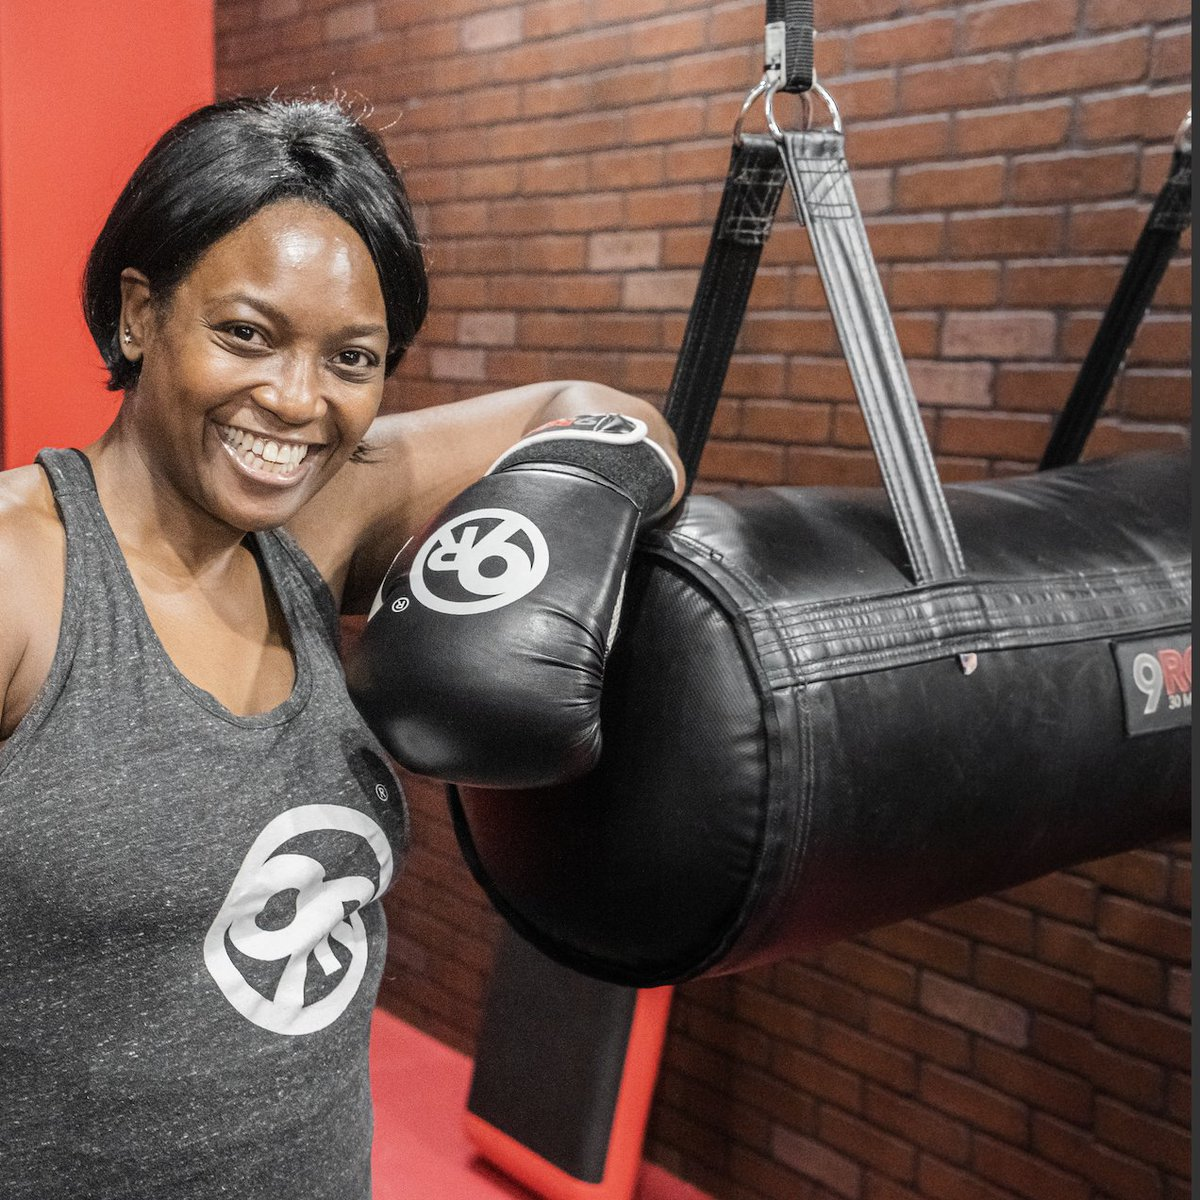 What can we say? Sometimes a quick, 30-minute 9Round sesh' is all you need to boost your mood! 😁  RT if you agree! 👏  #9Round #9RoundFitness #9RoundNation #Workout #Fitness #HealthAndFitness https://t.co/1cb4elmJ94